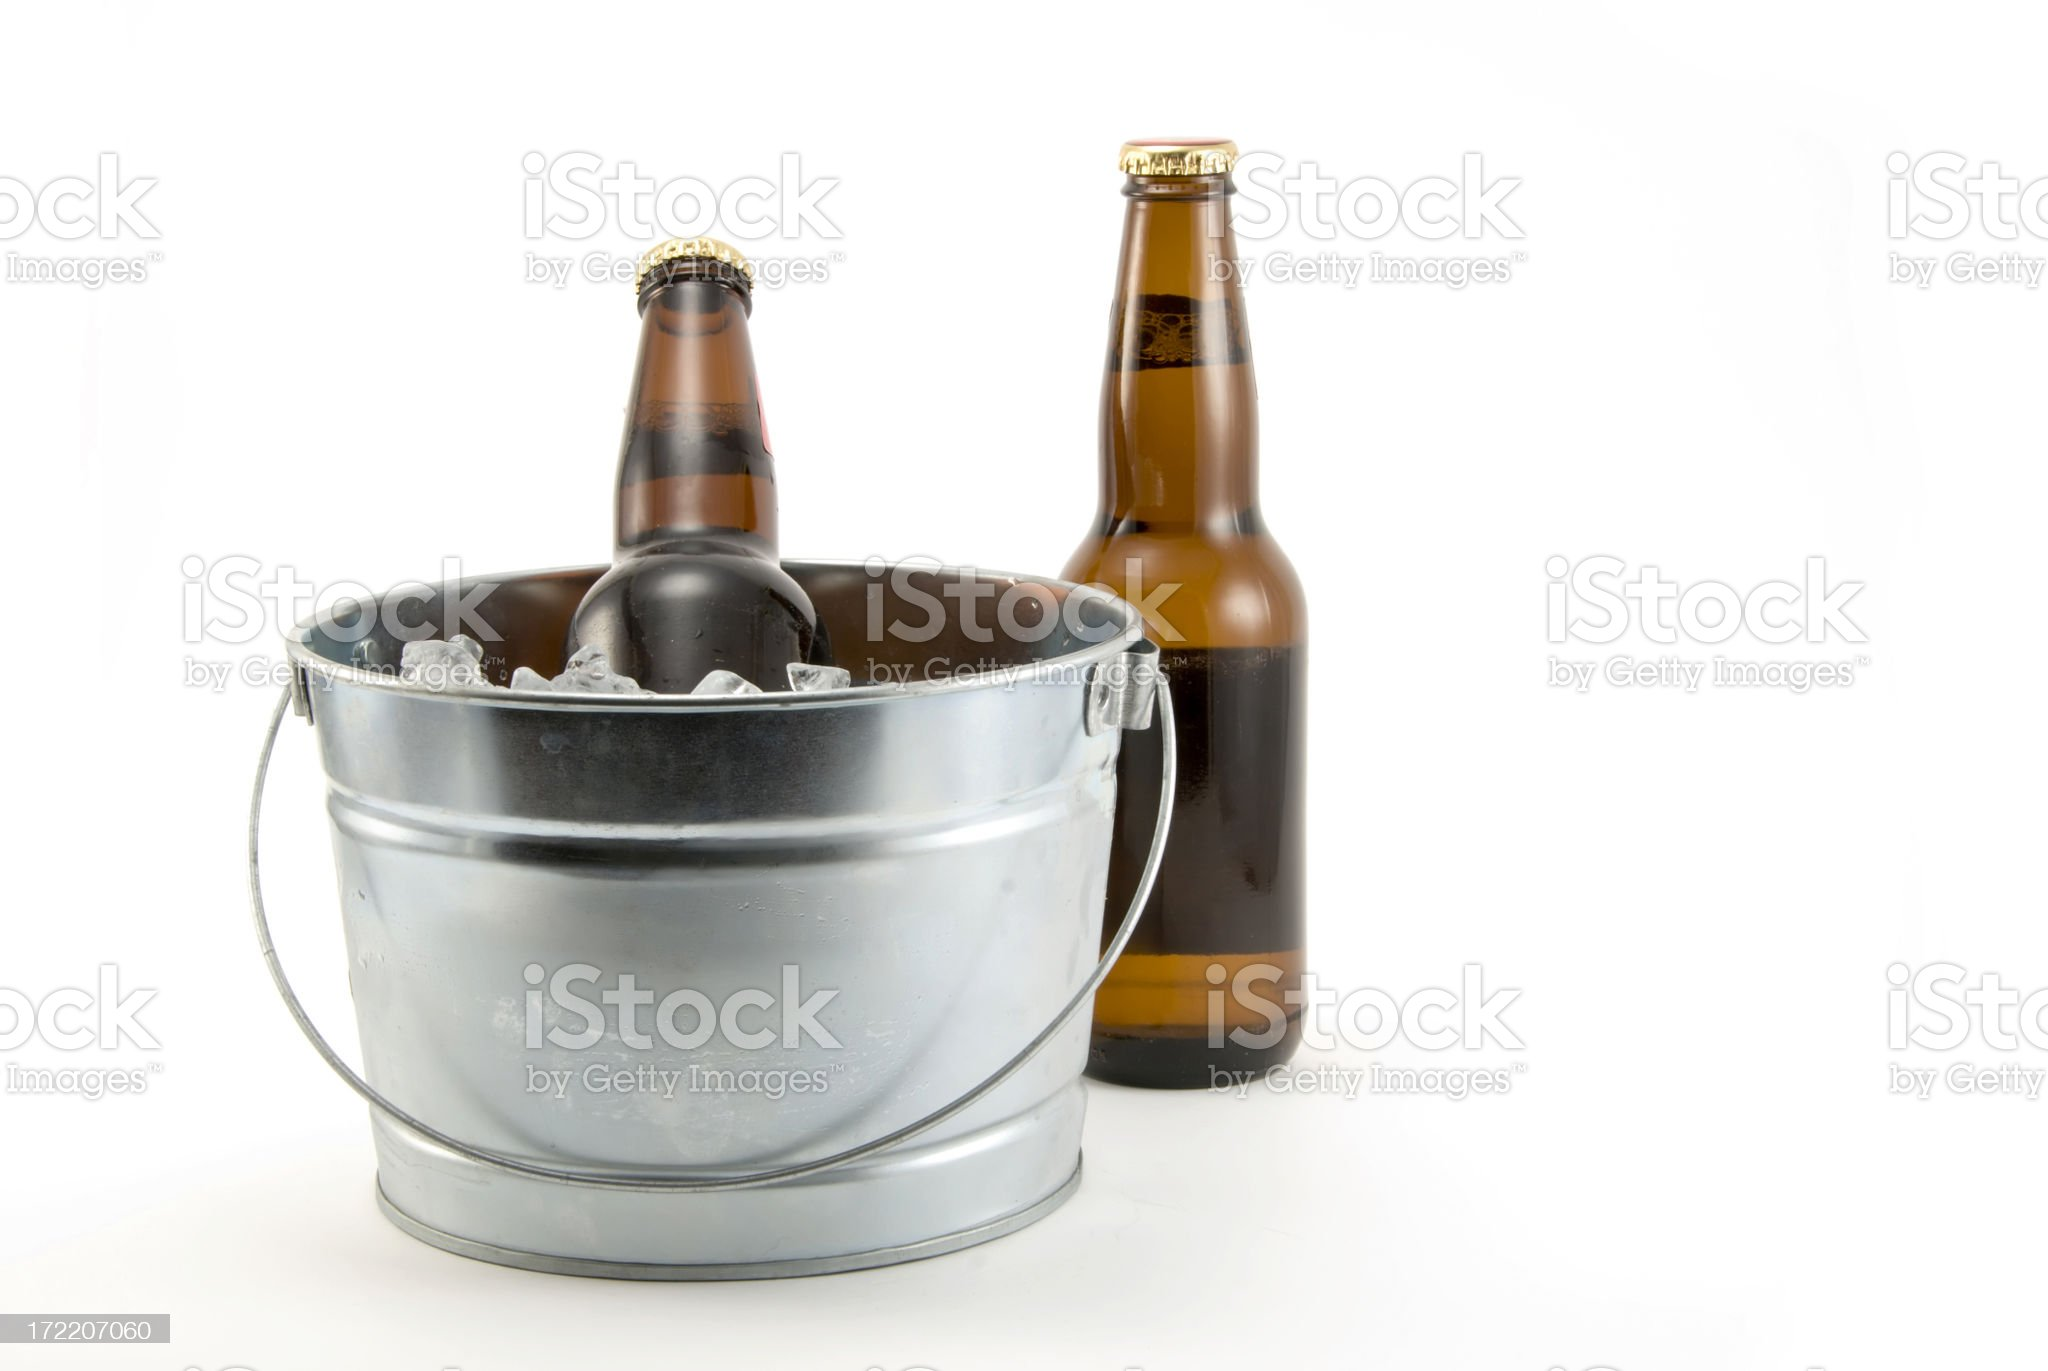 bottle of beer on ice royalty-free stock photo